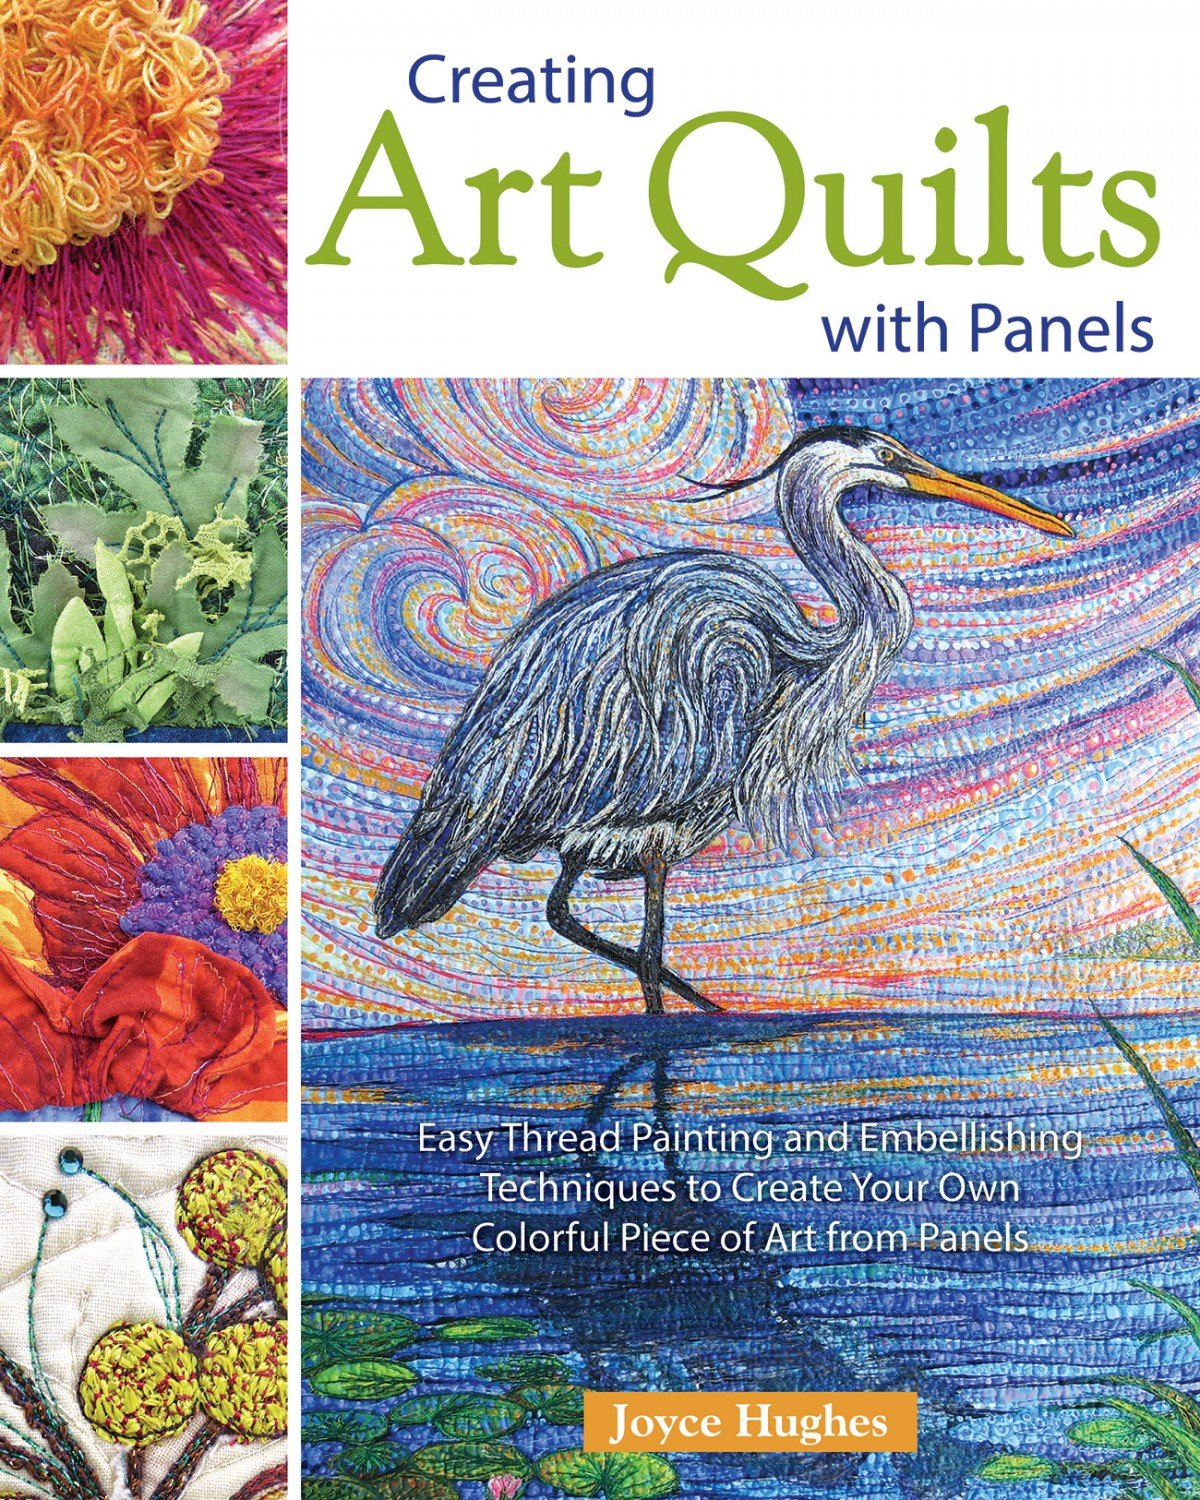 CREATING ART QUILTS FROM PANELS